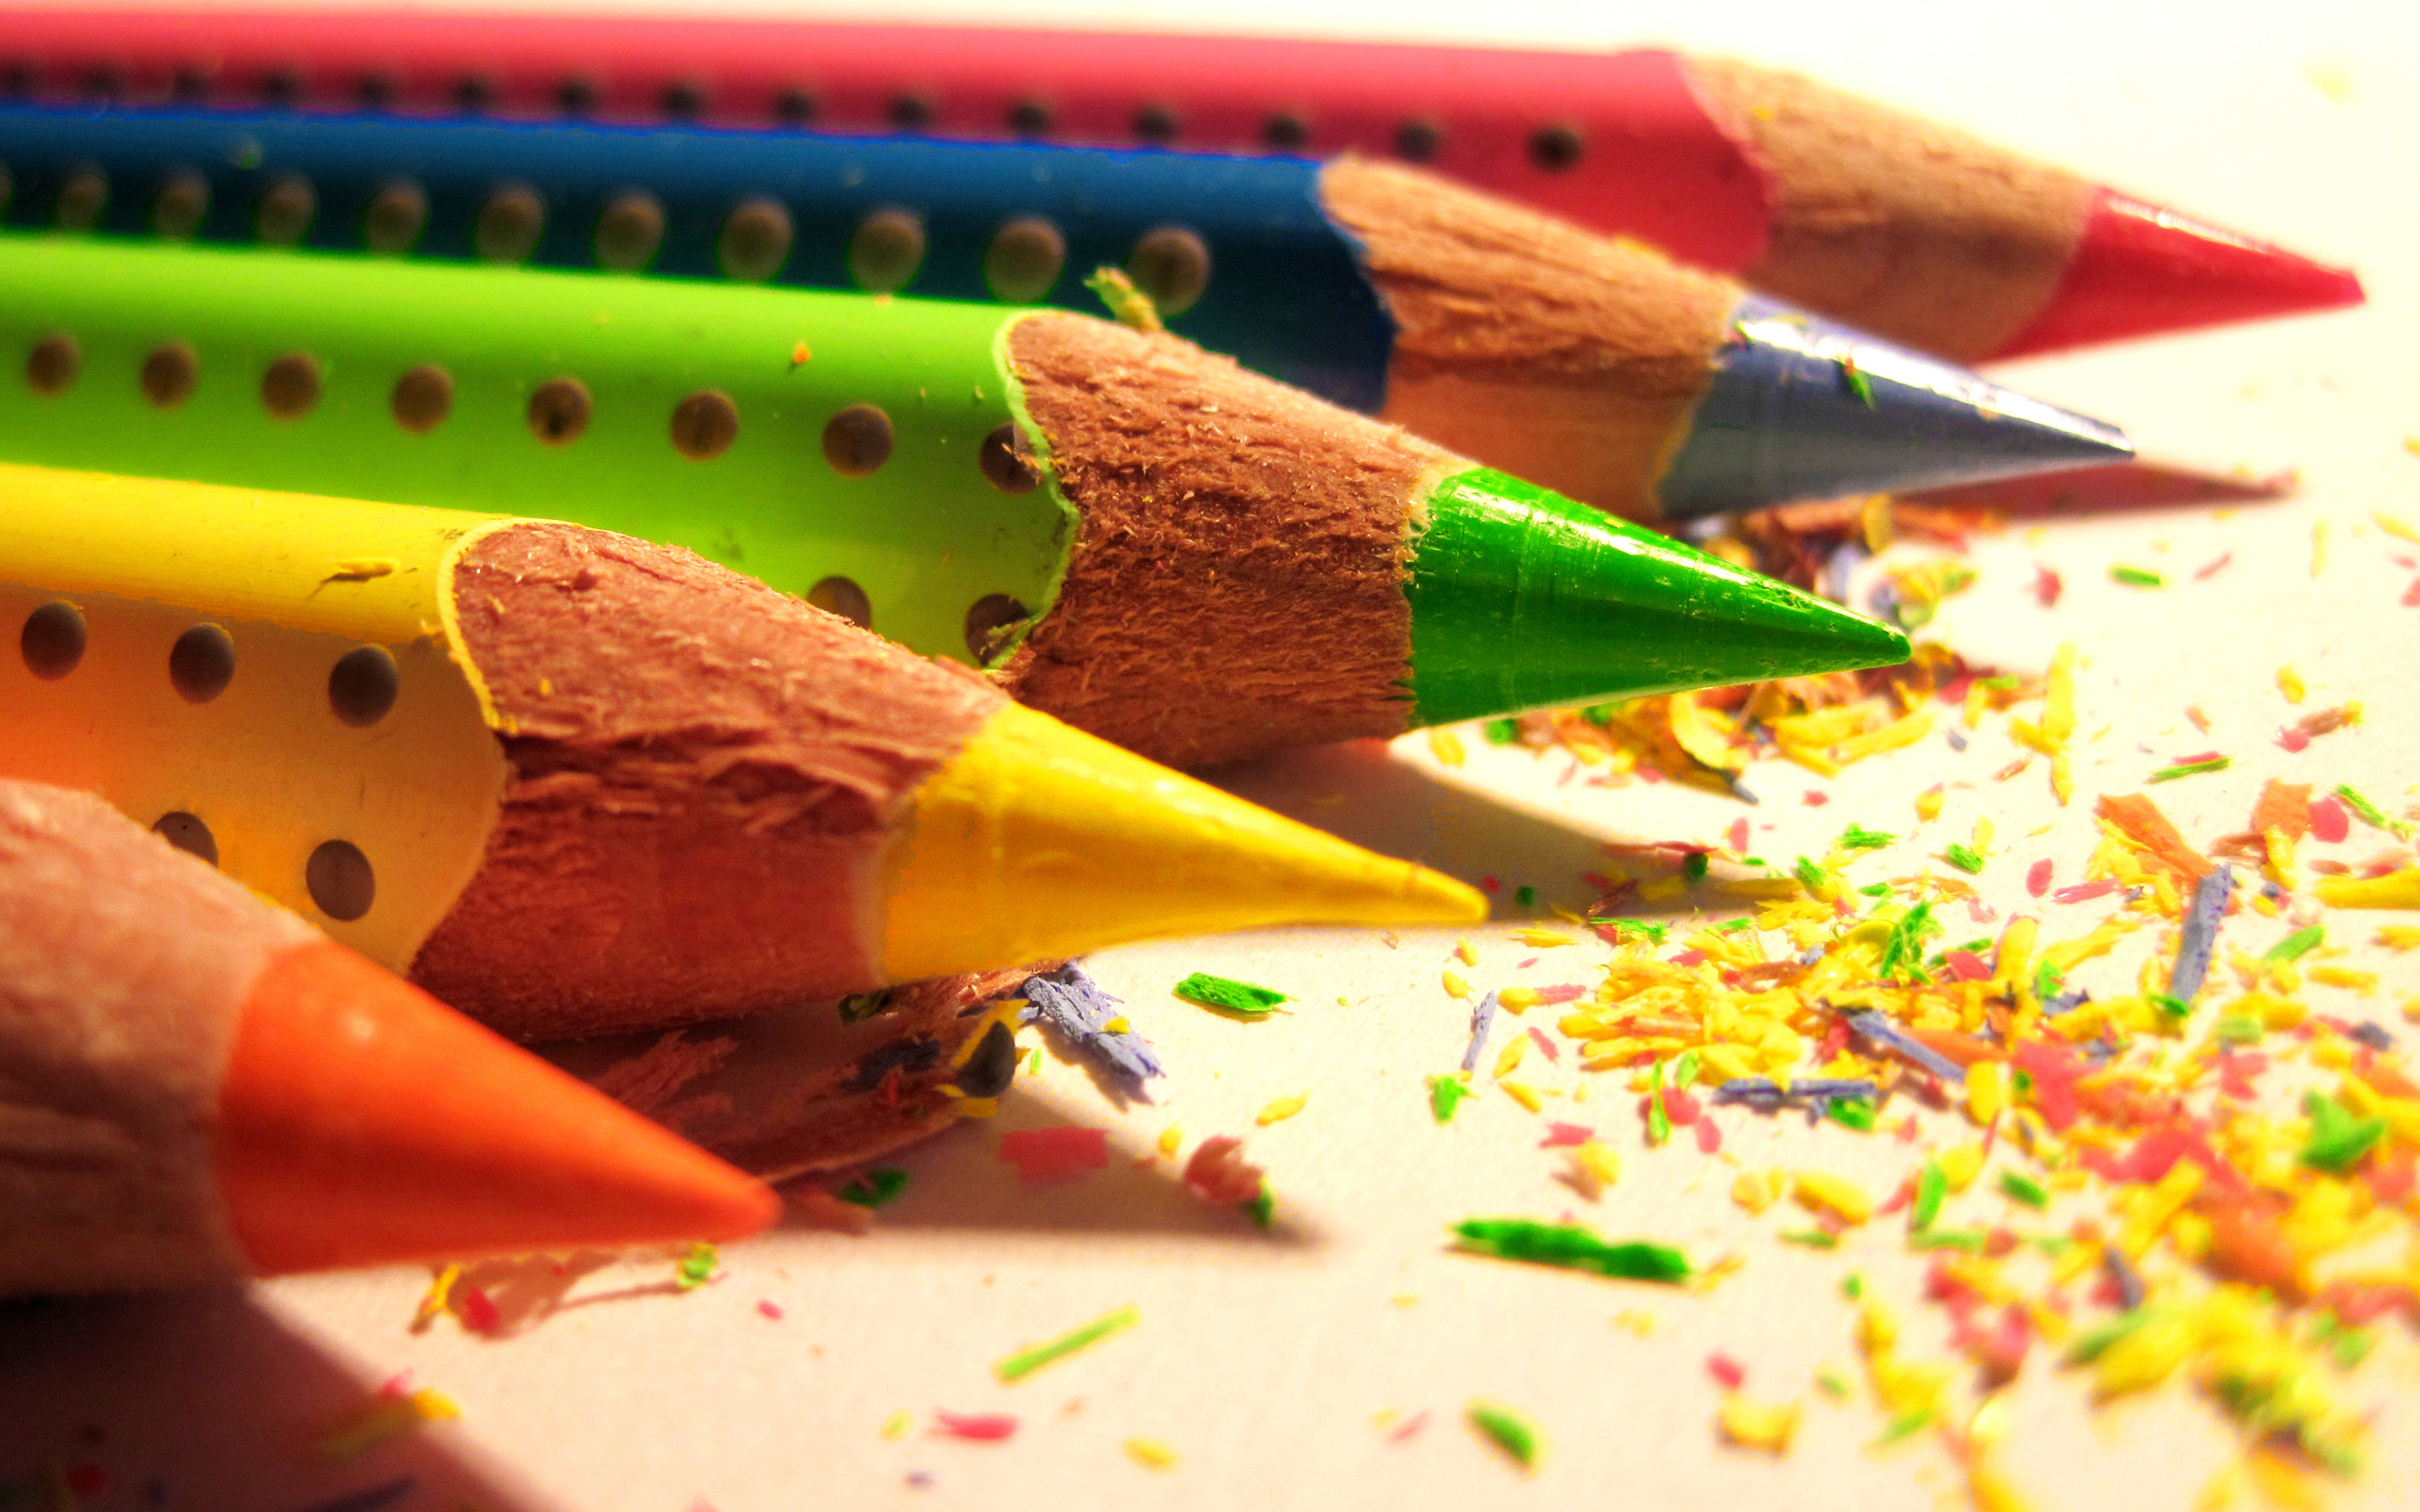 Image: Pencils, sharp, color, set, shavings, wood